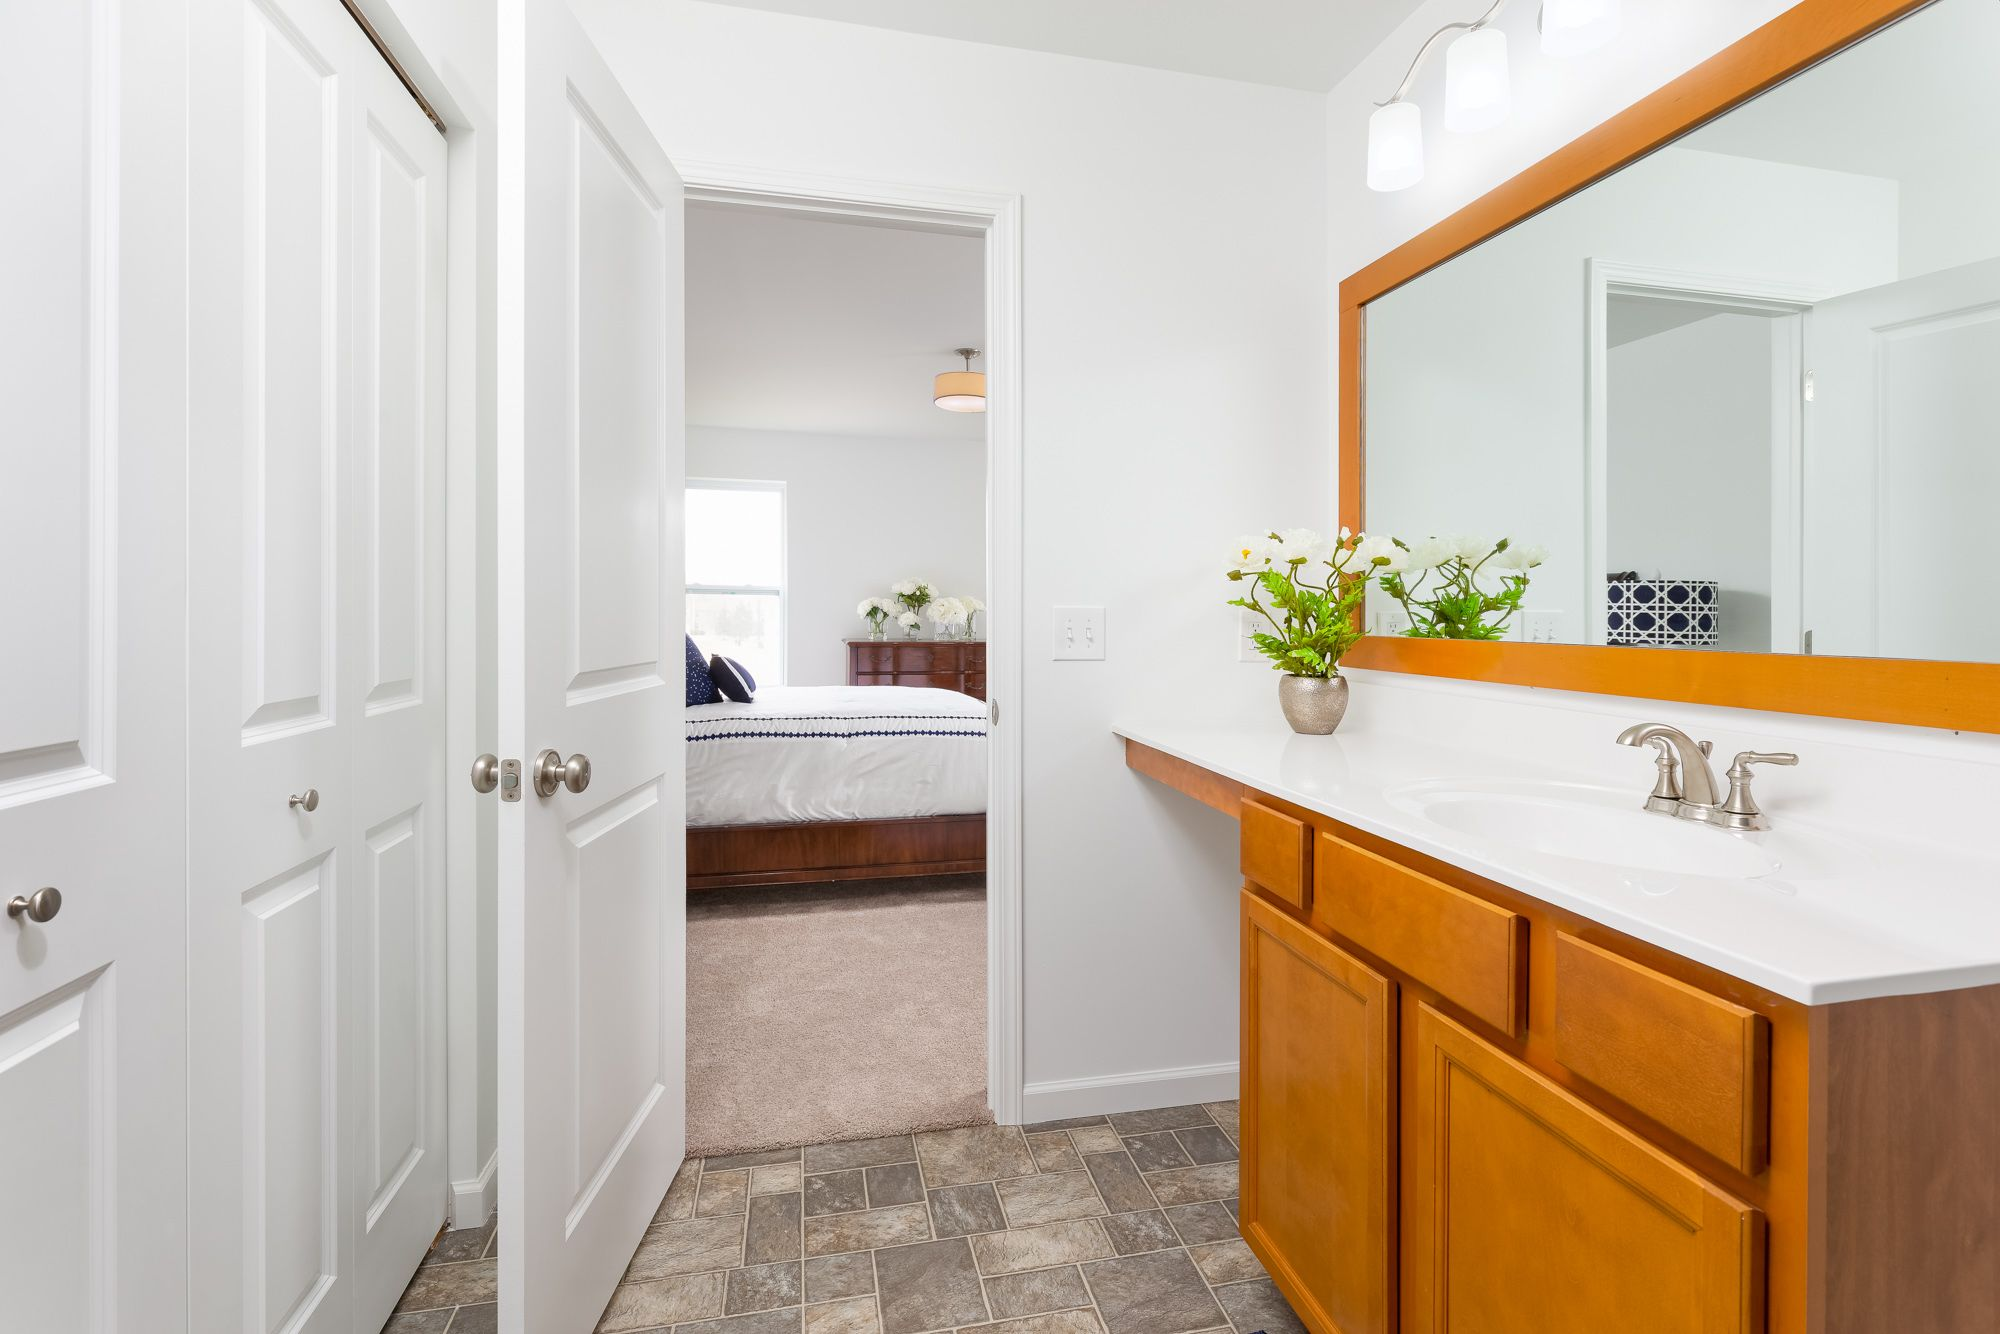 Bathroom featured in the Elements 2070 By Allen Edwin Homes in South Bend, IN